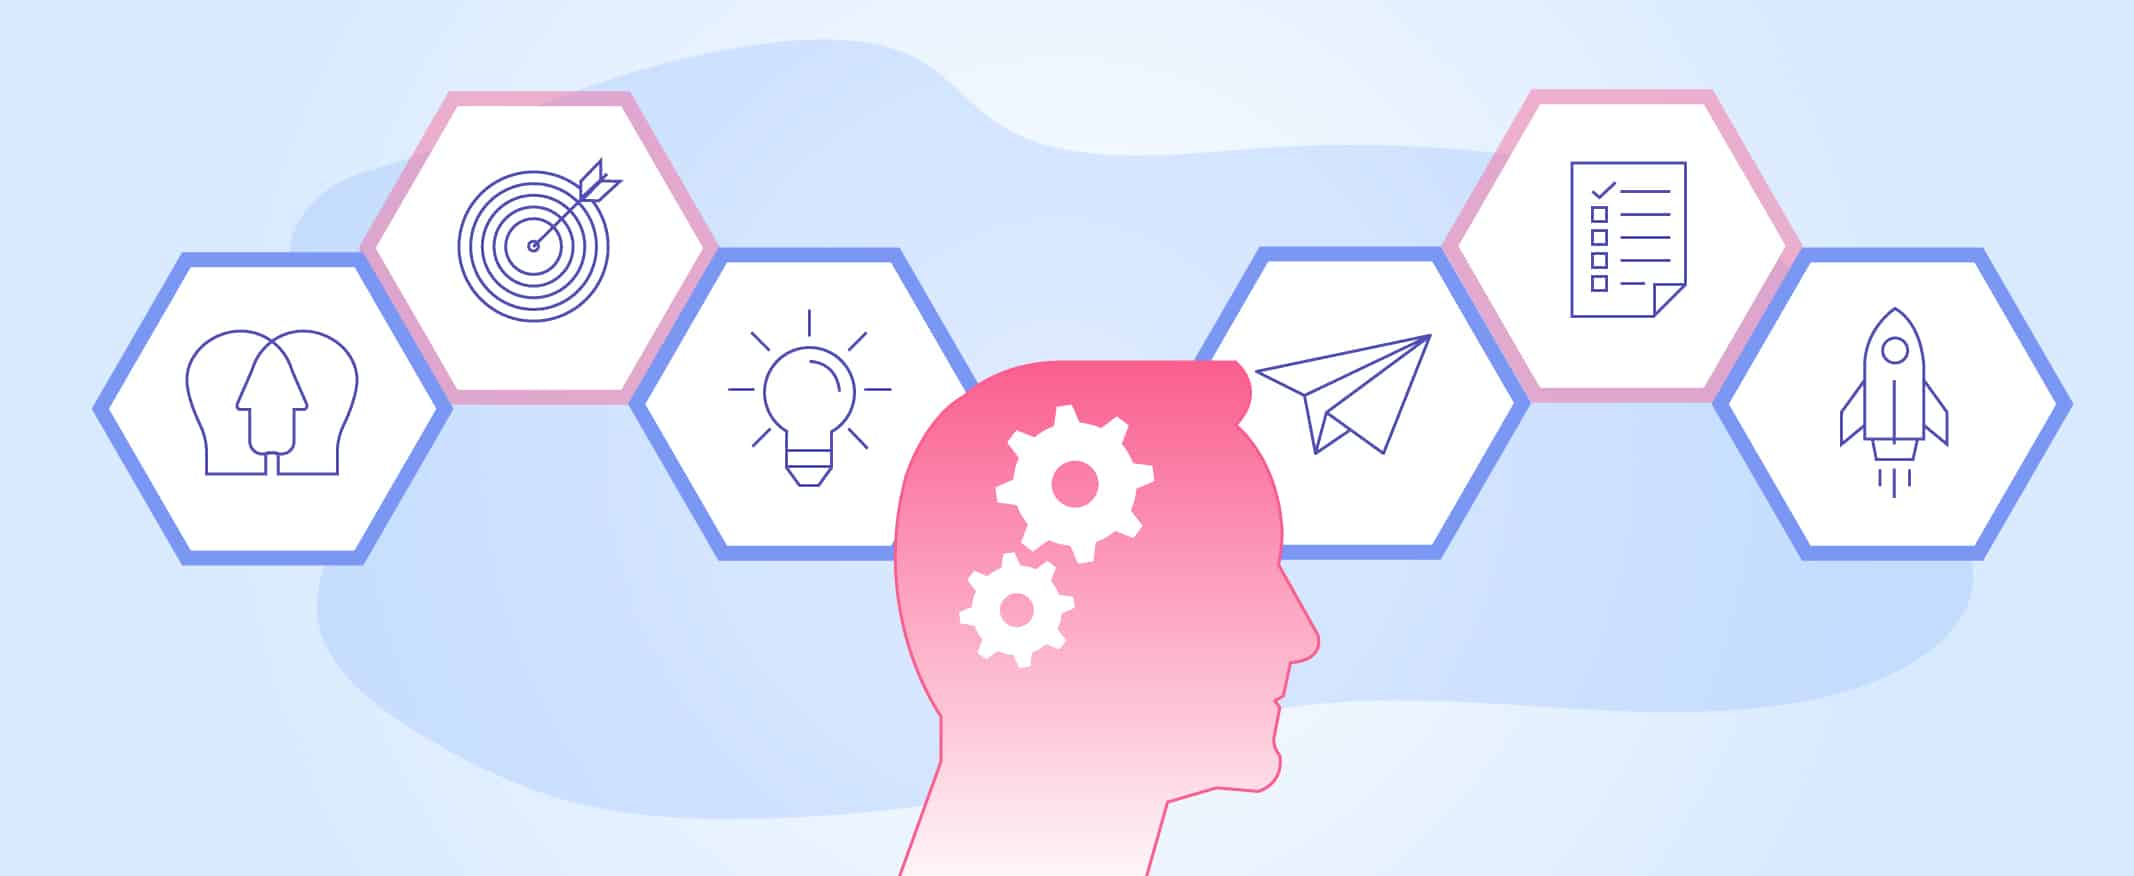 Banking Technology Trends: Design Thinking to Understand What Customers Need